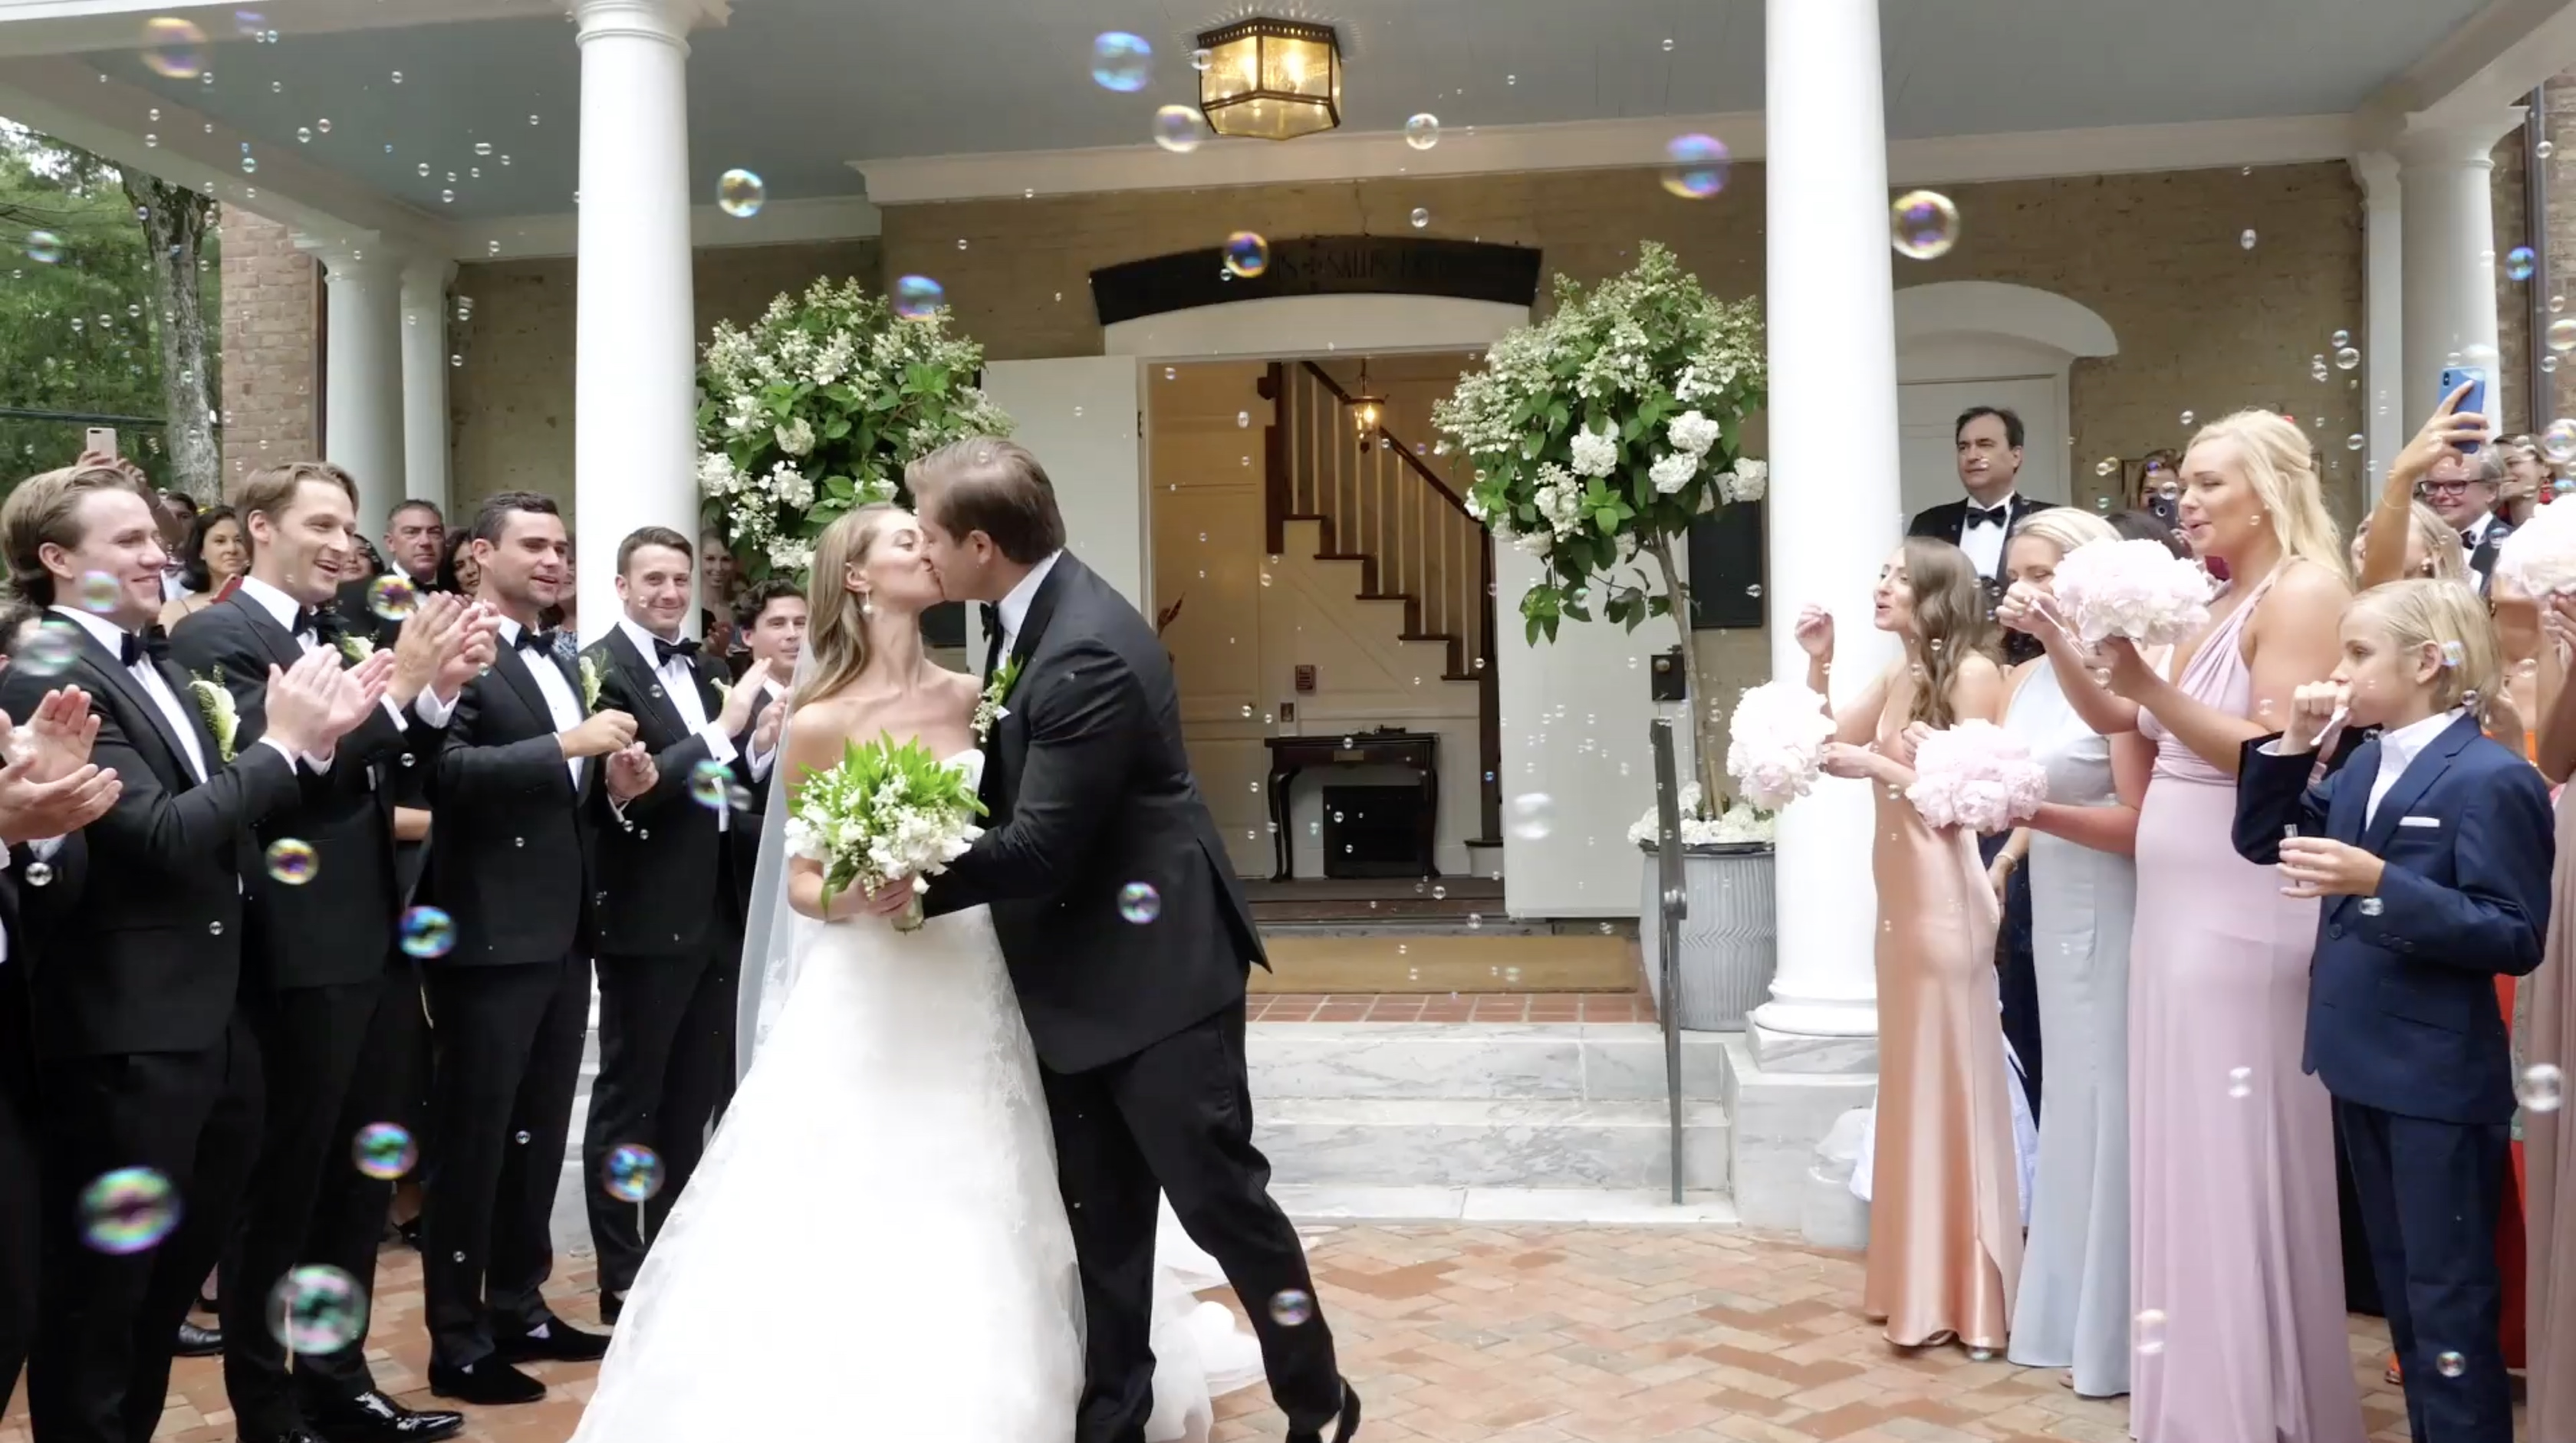 An Upstate NYC Wedding Video